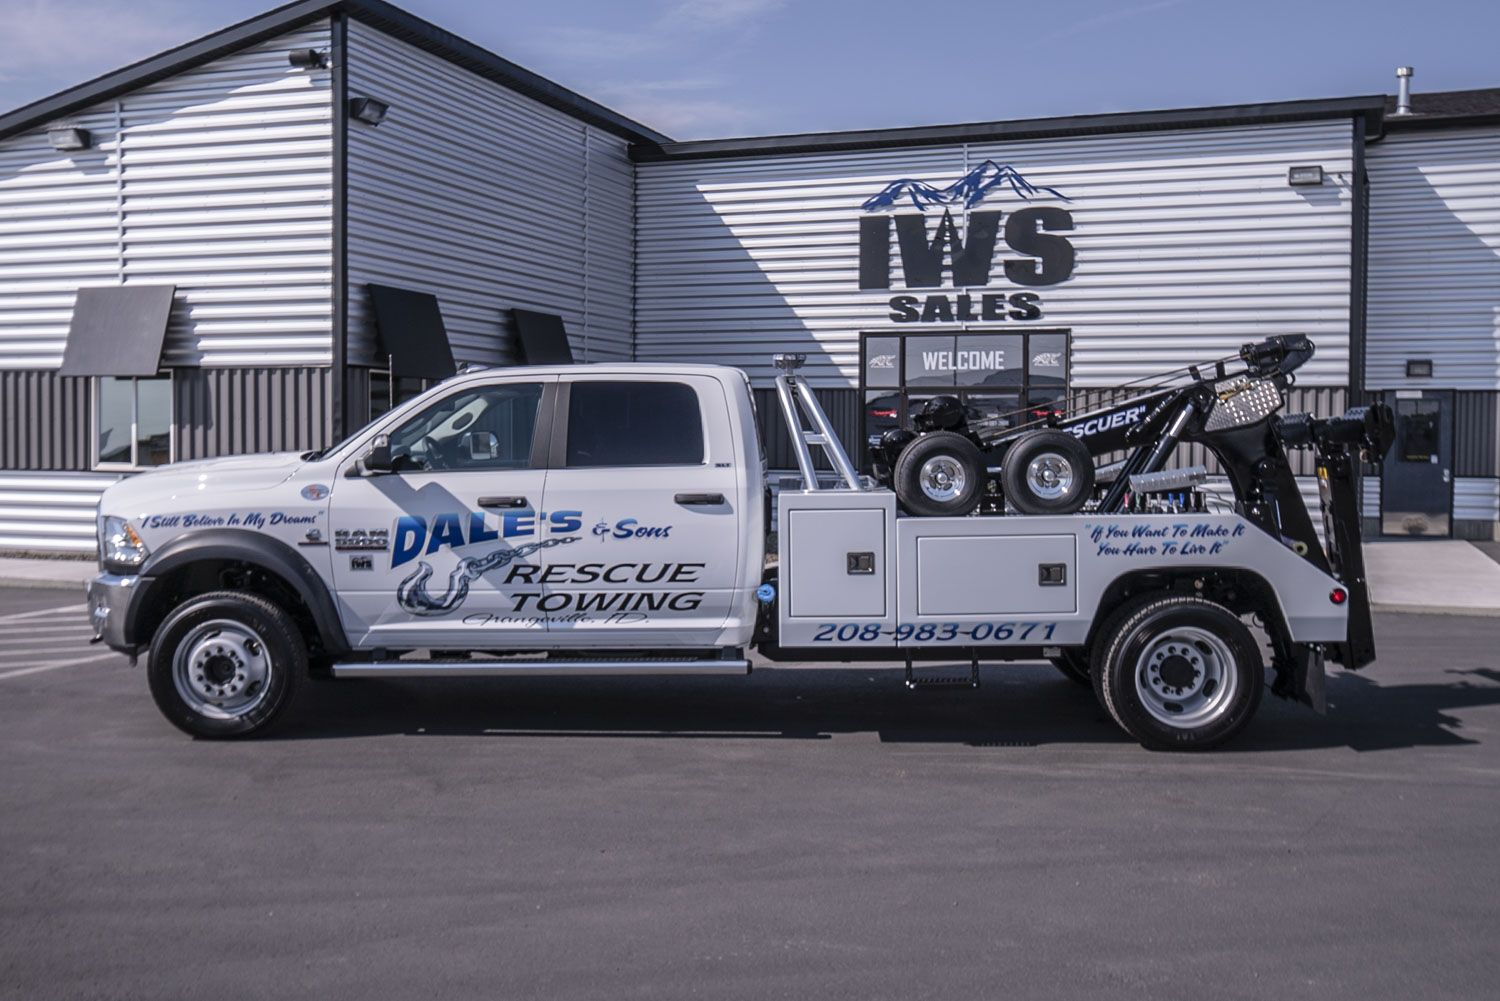 Latest Wrecker Build From IWS Sales - Company Equipment - TowForce